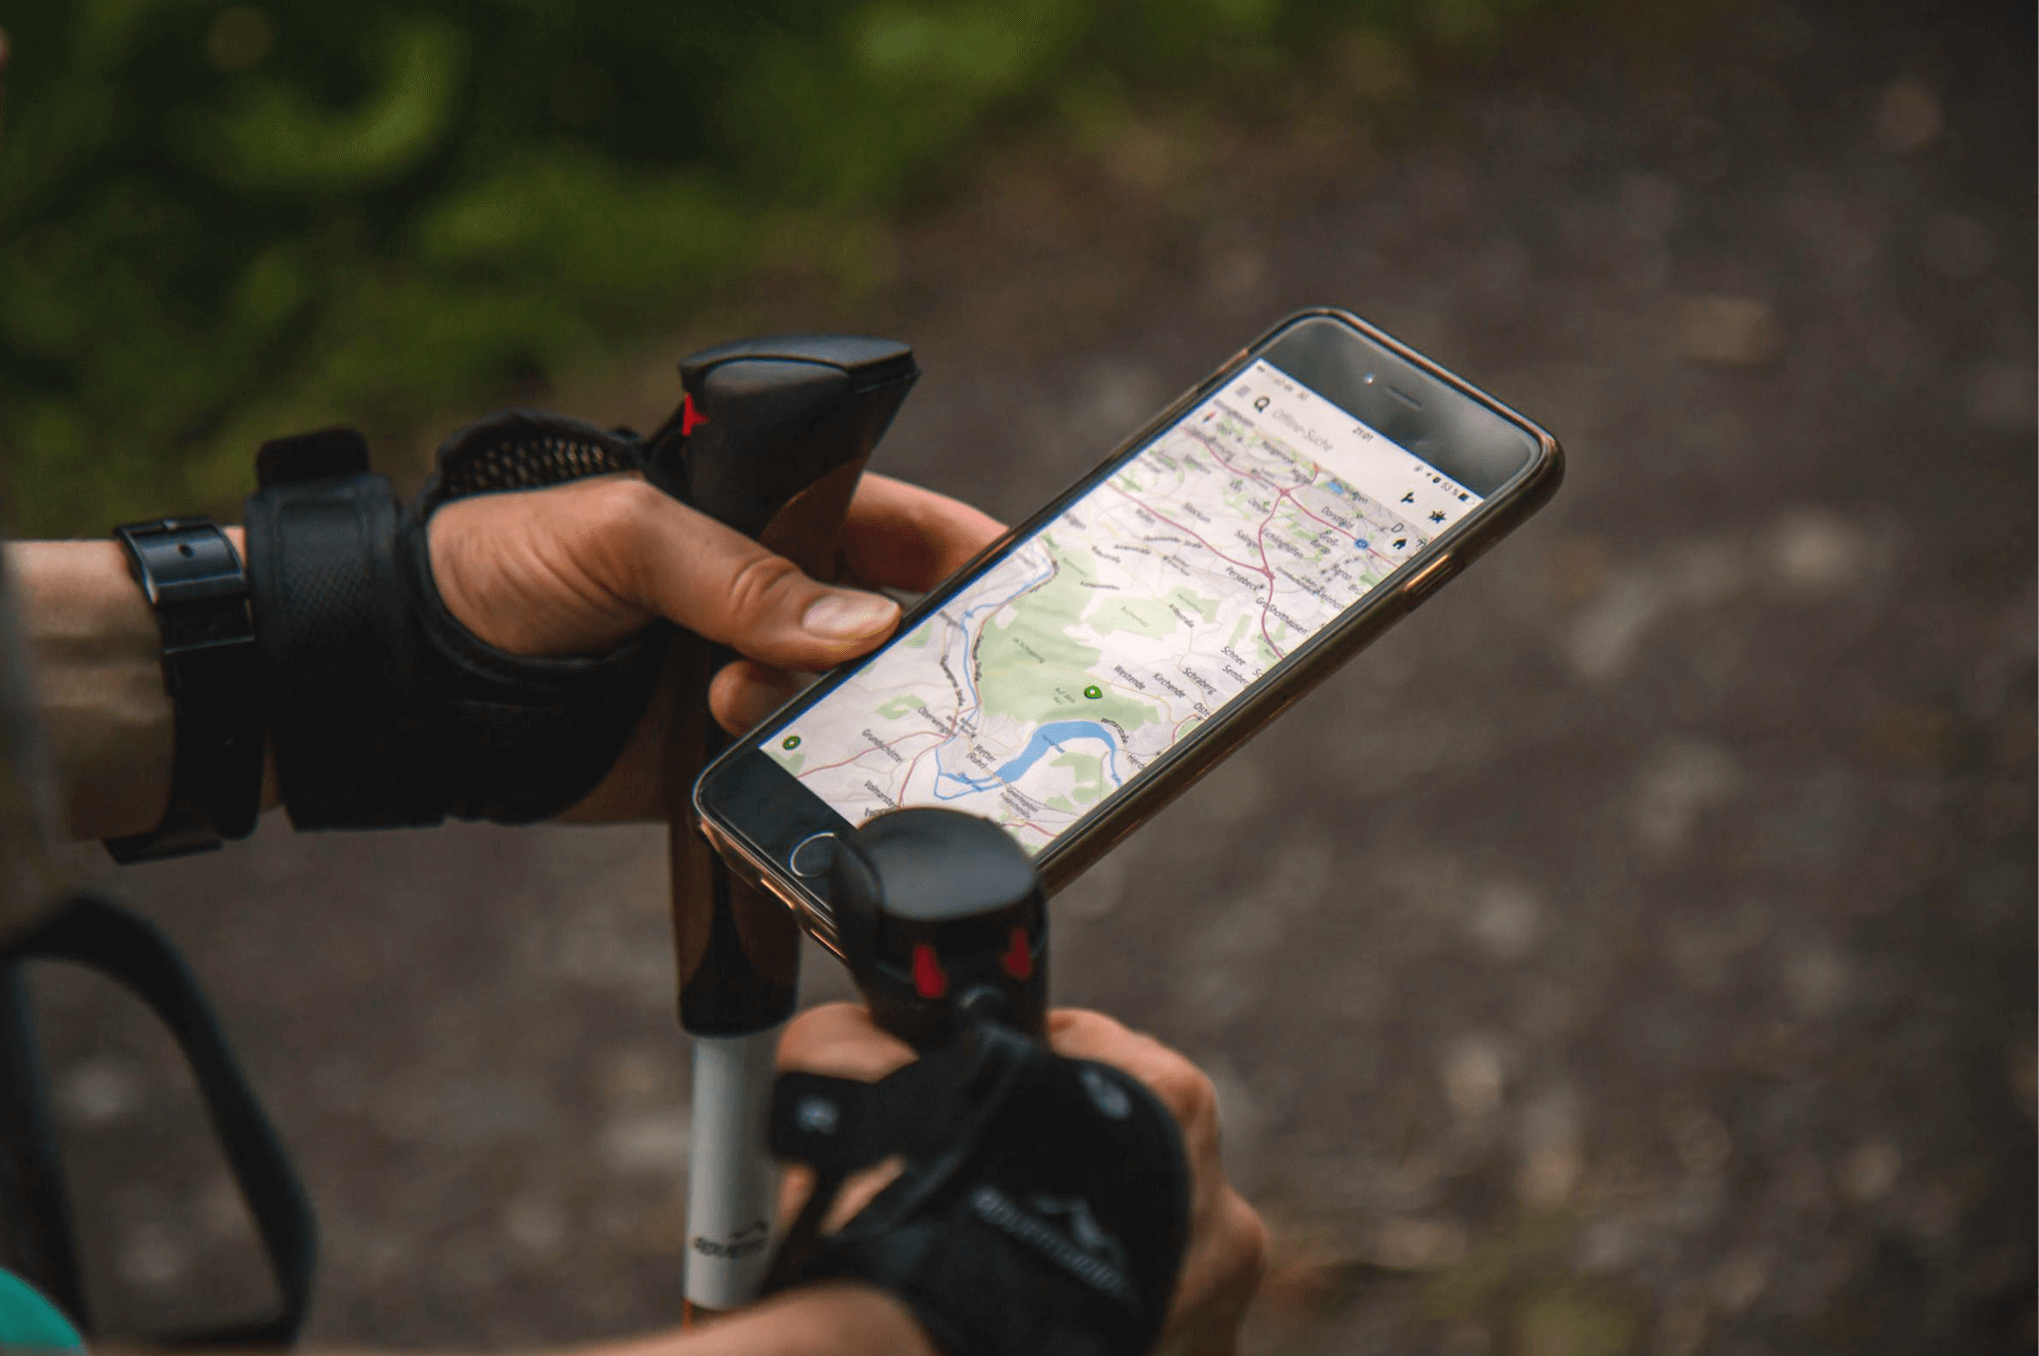 User engaging with app on their phone while hiking